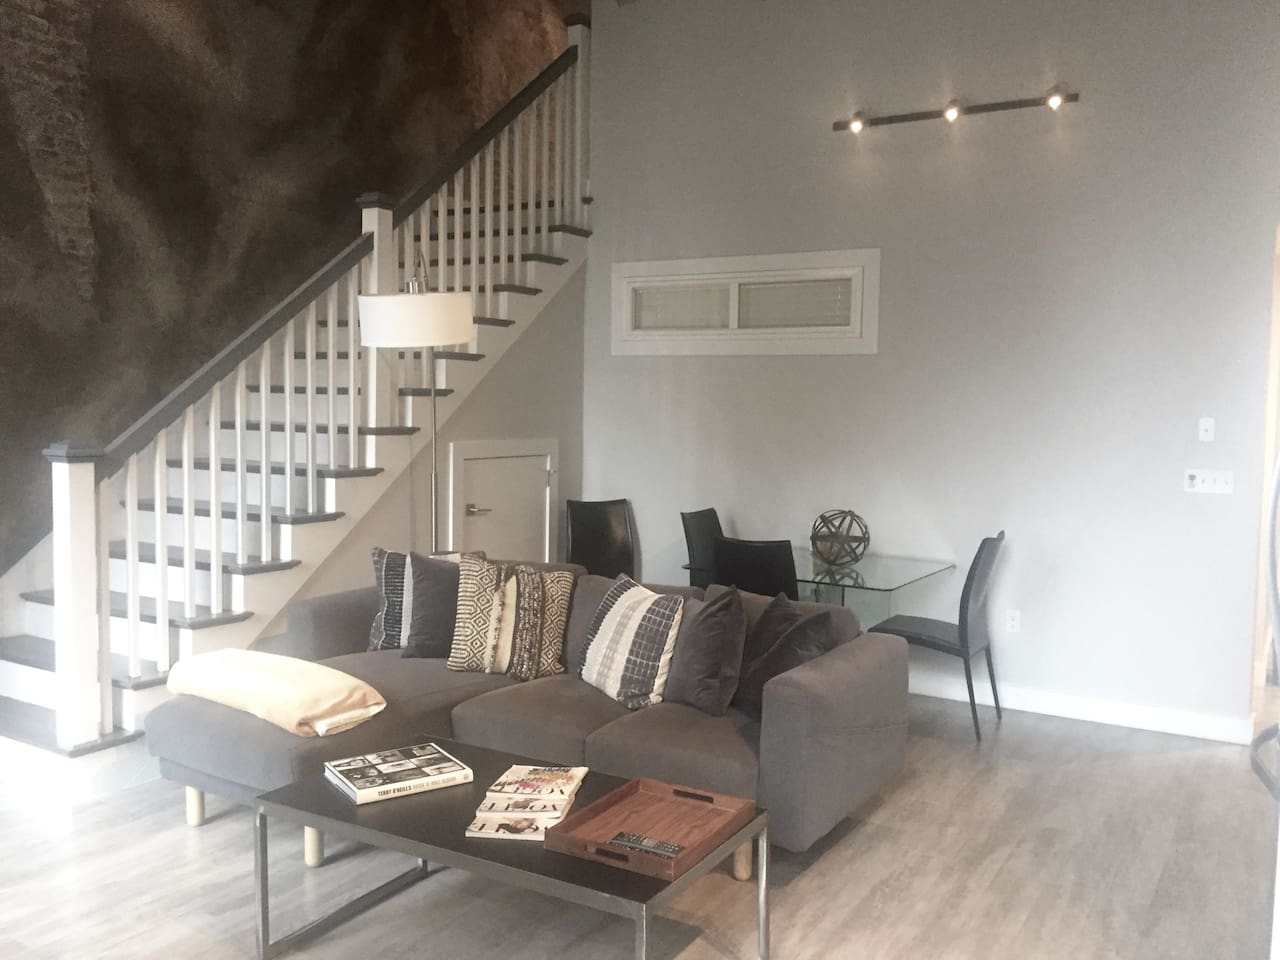 Everything you need! Duplex with high ceilings + Cable + Wifi + Apple Tvs + 2 Full Baths